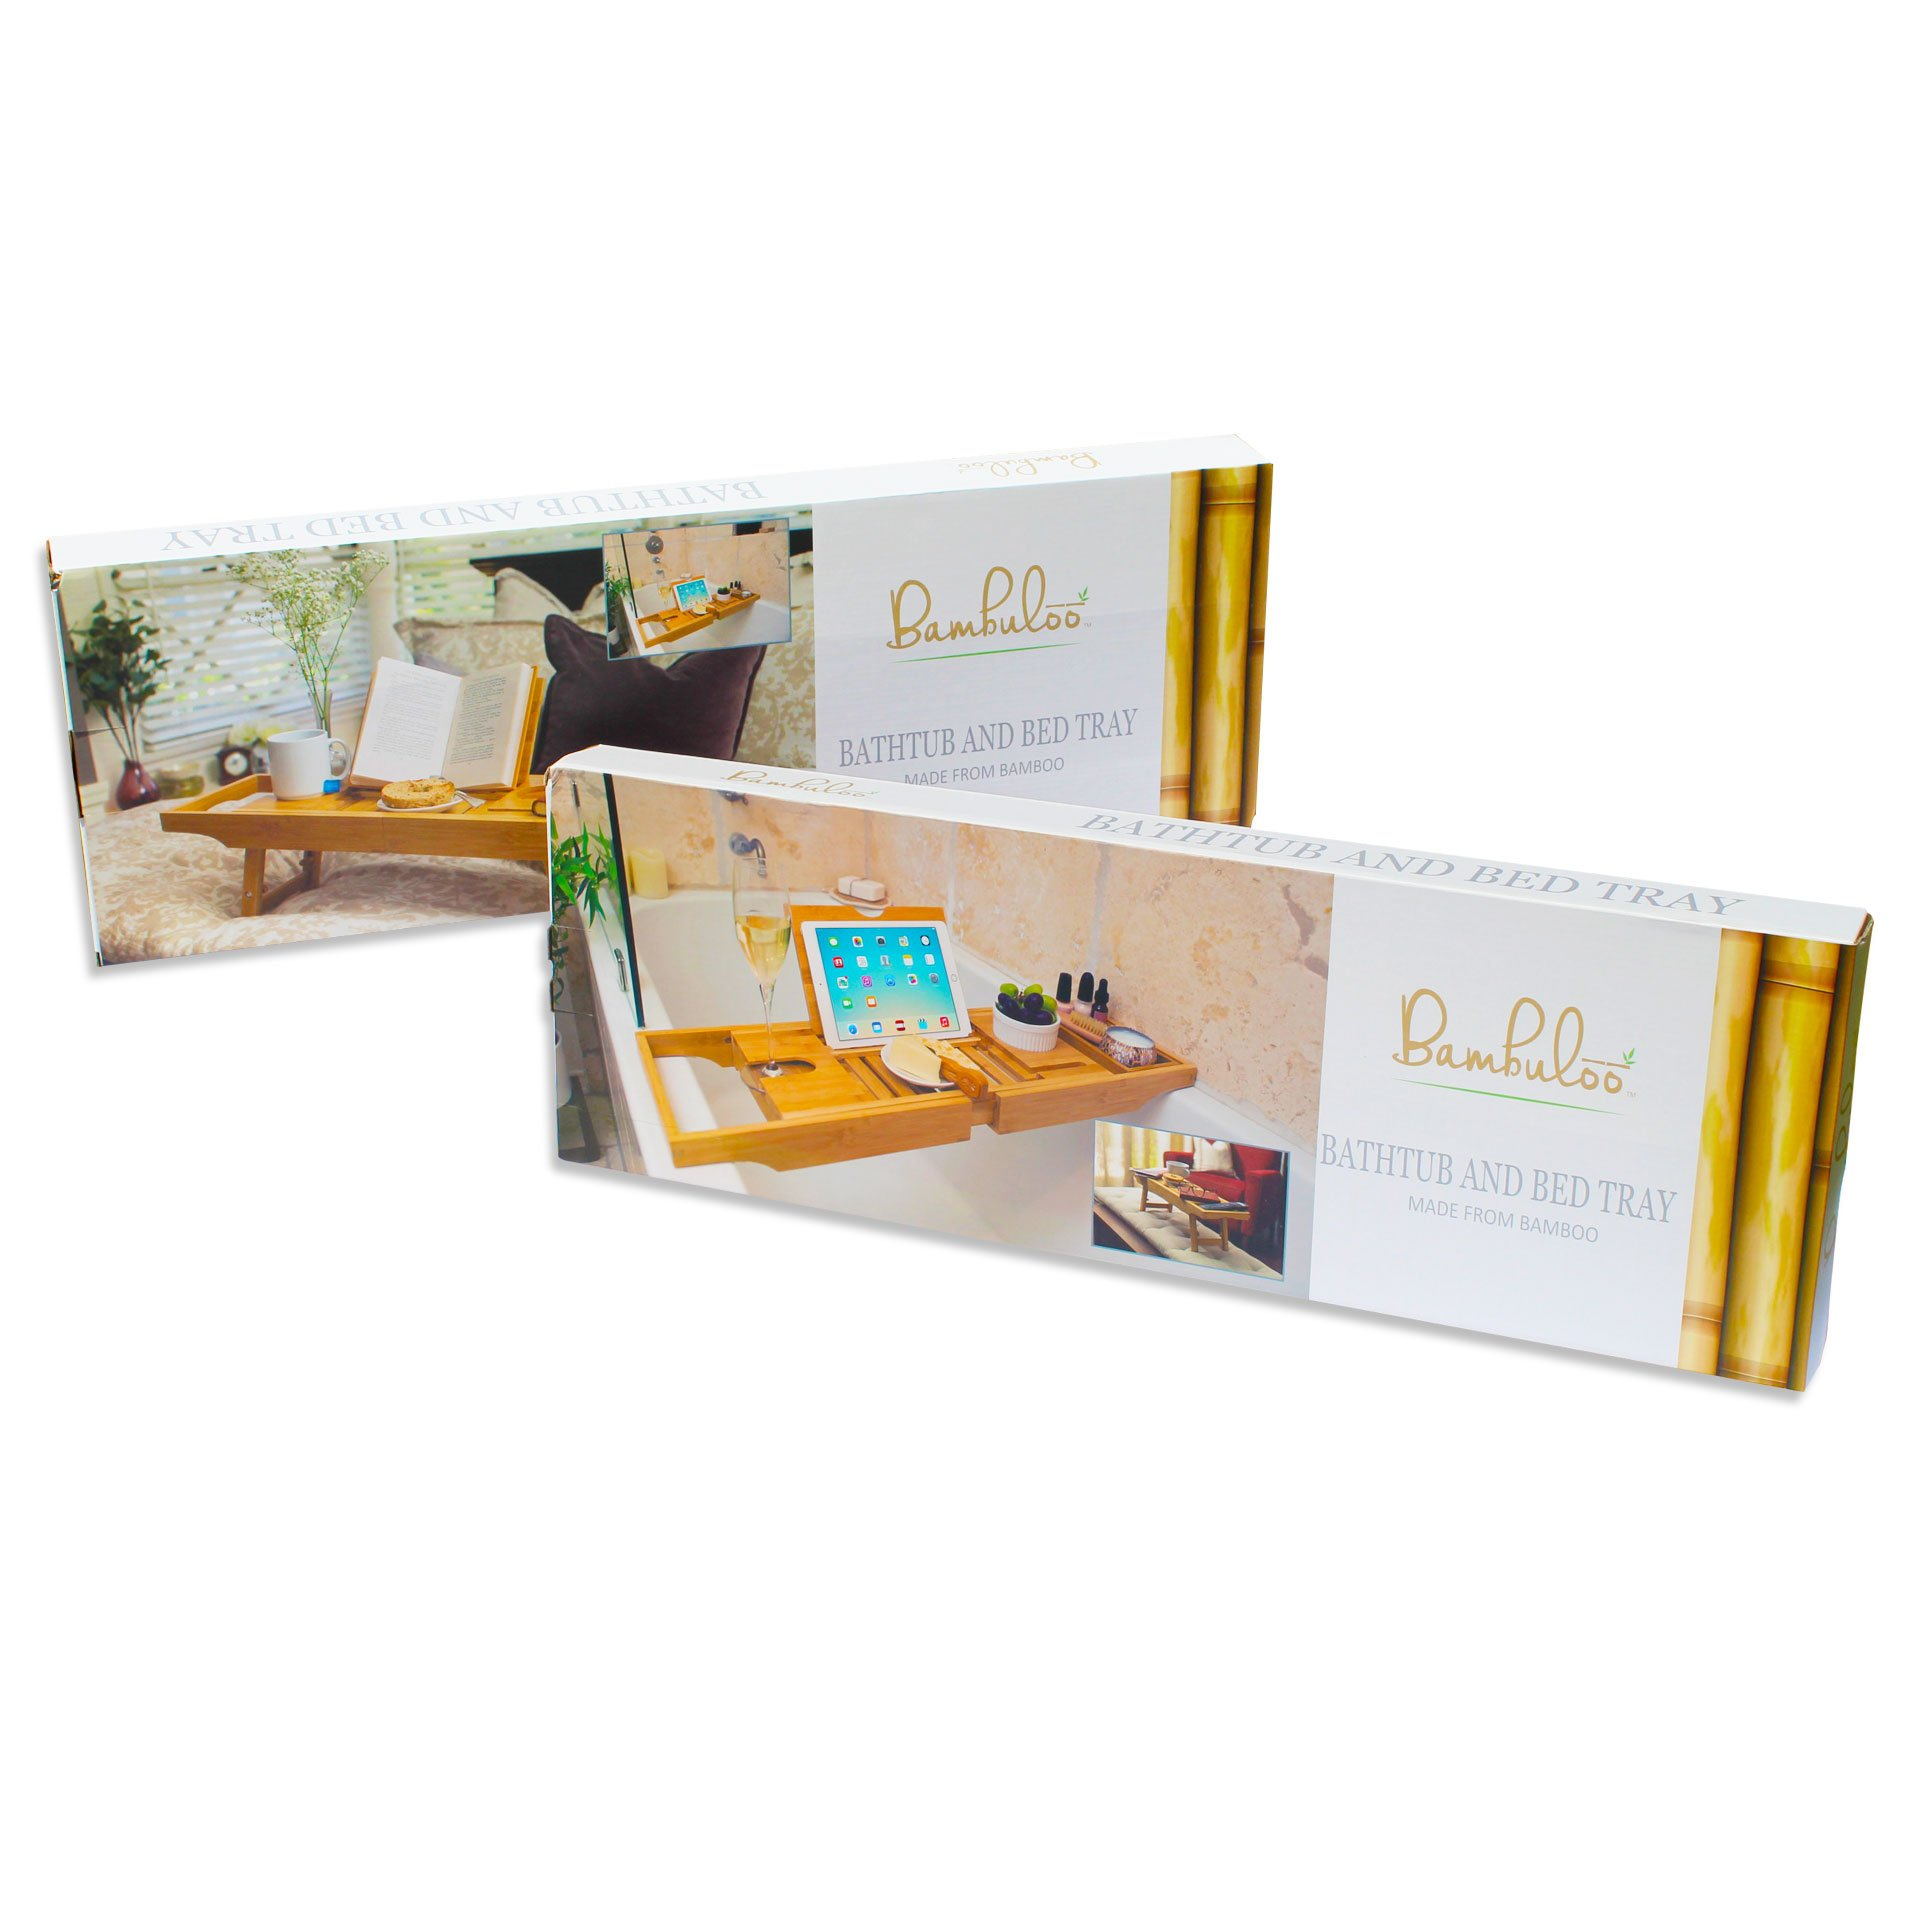 Bathtub Caddy and Bed Tray Combo - Premium Bamboo Wood with 2 Lavender Bath Bombs - Folding Legs/Fully Adjustable - Mold Resistant - Phone Tablet and Wine Holders for The Finest Home Spa Experience by Bambuloo (Image #8)